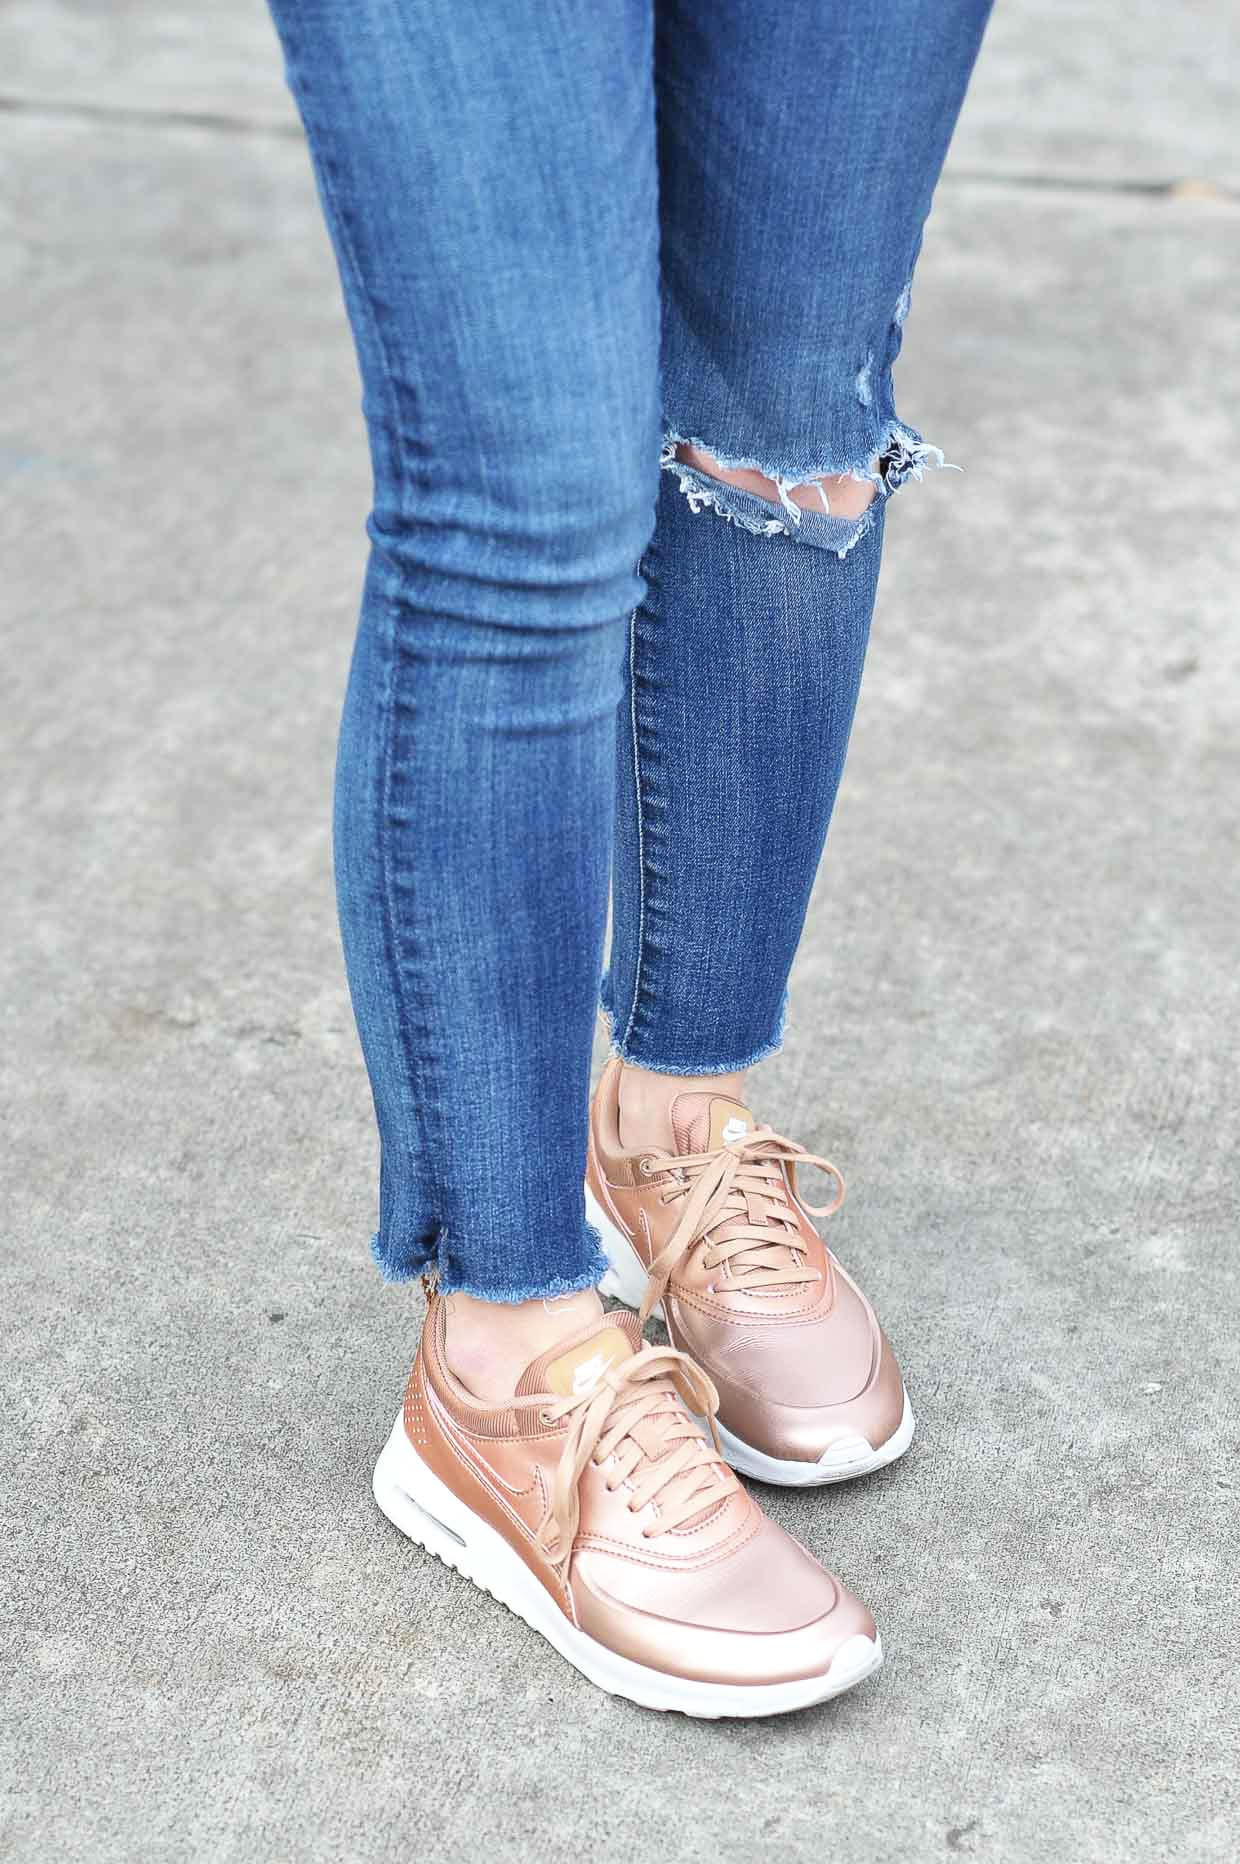 Rose Gold Sneakers For Under $100 - Poor Little It Girl